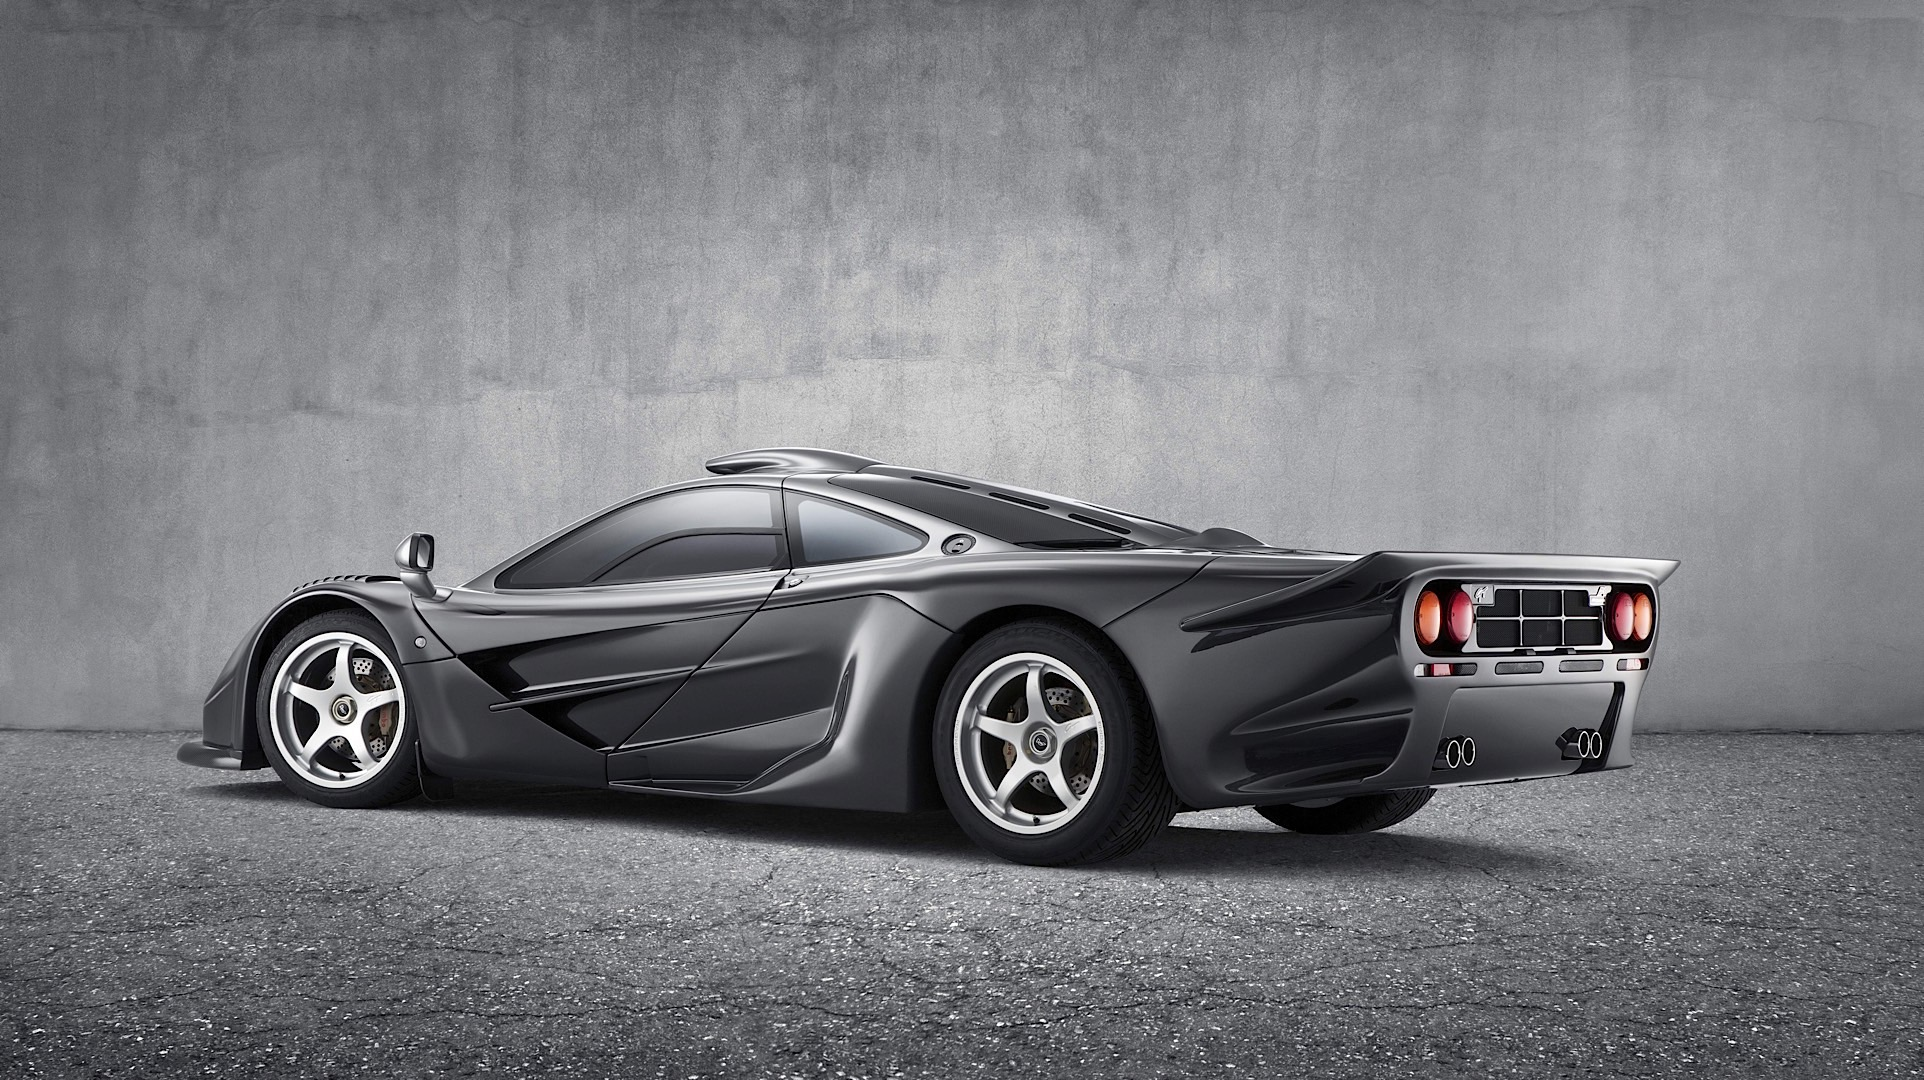 European Auto House >> McLaren Brings Alain Prost-inspired P1 and F1 GT To Goodwood - autoevolution